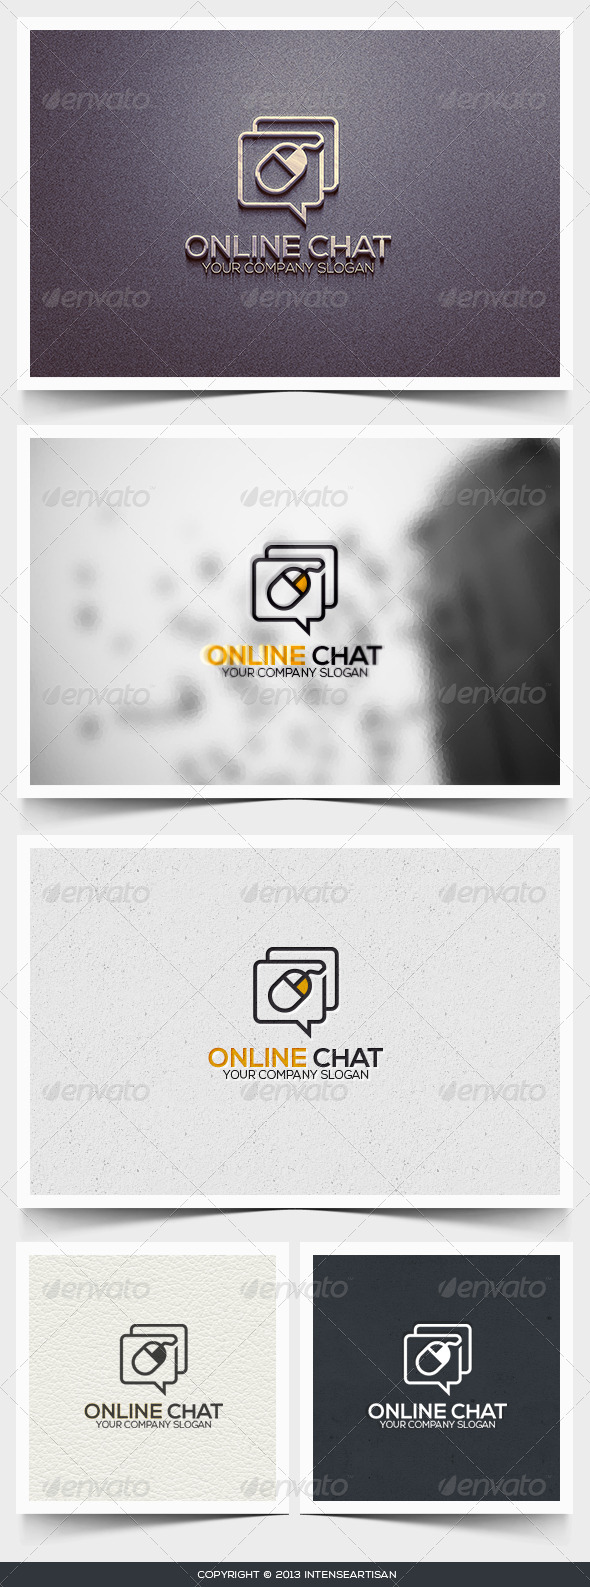 Online Chat  Logo Template - Objects Logo Templates